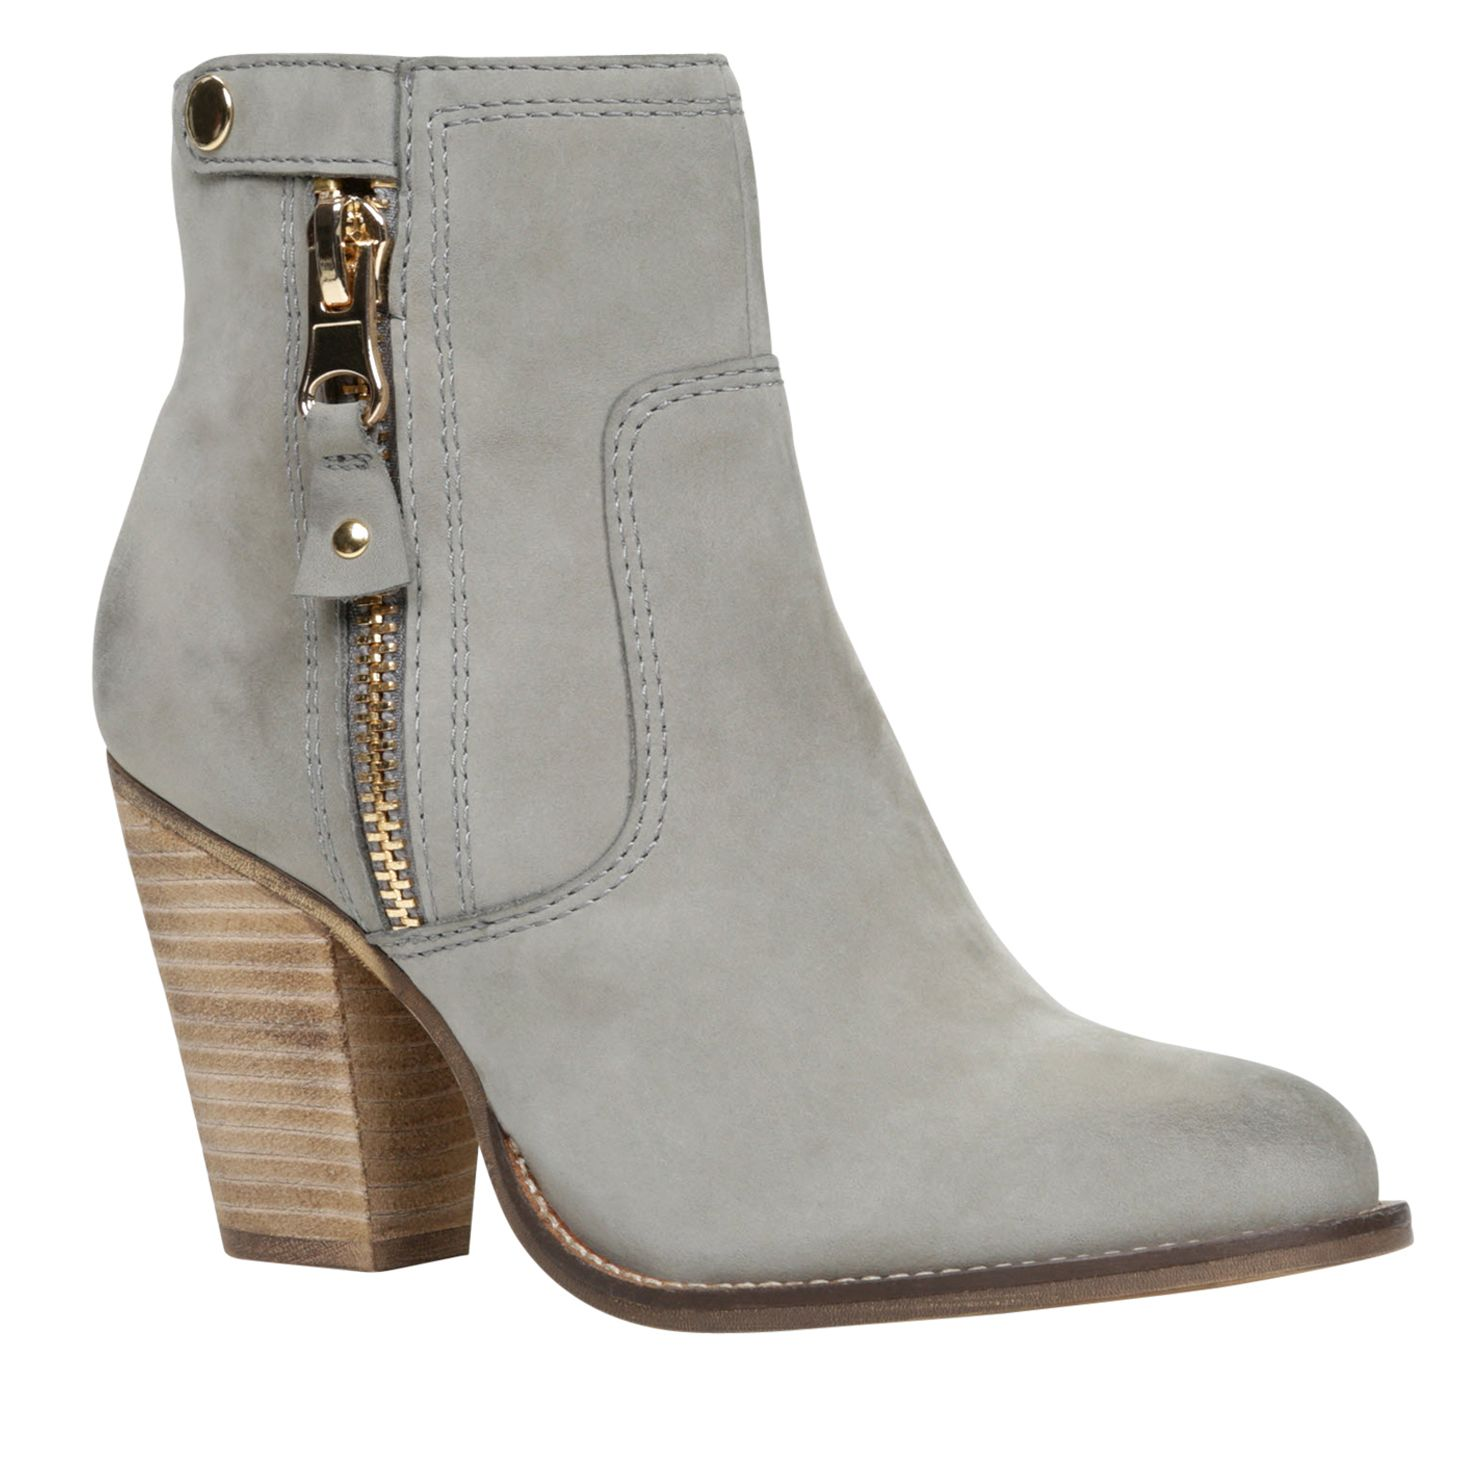 Olenalla side zip ankle boots